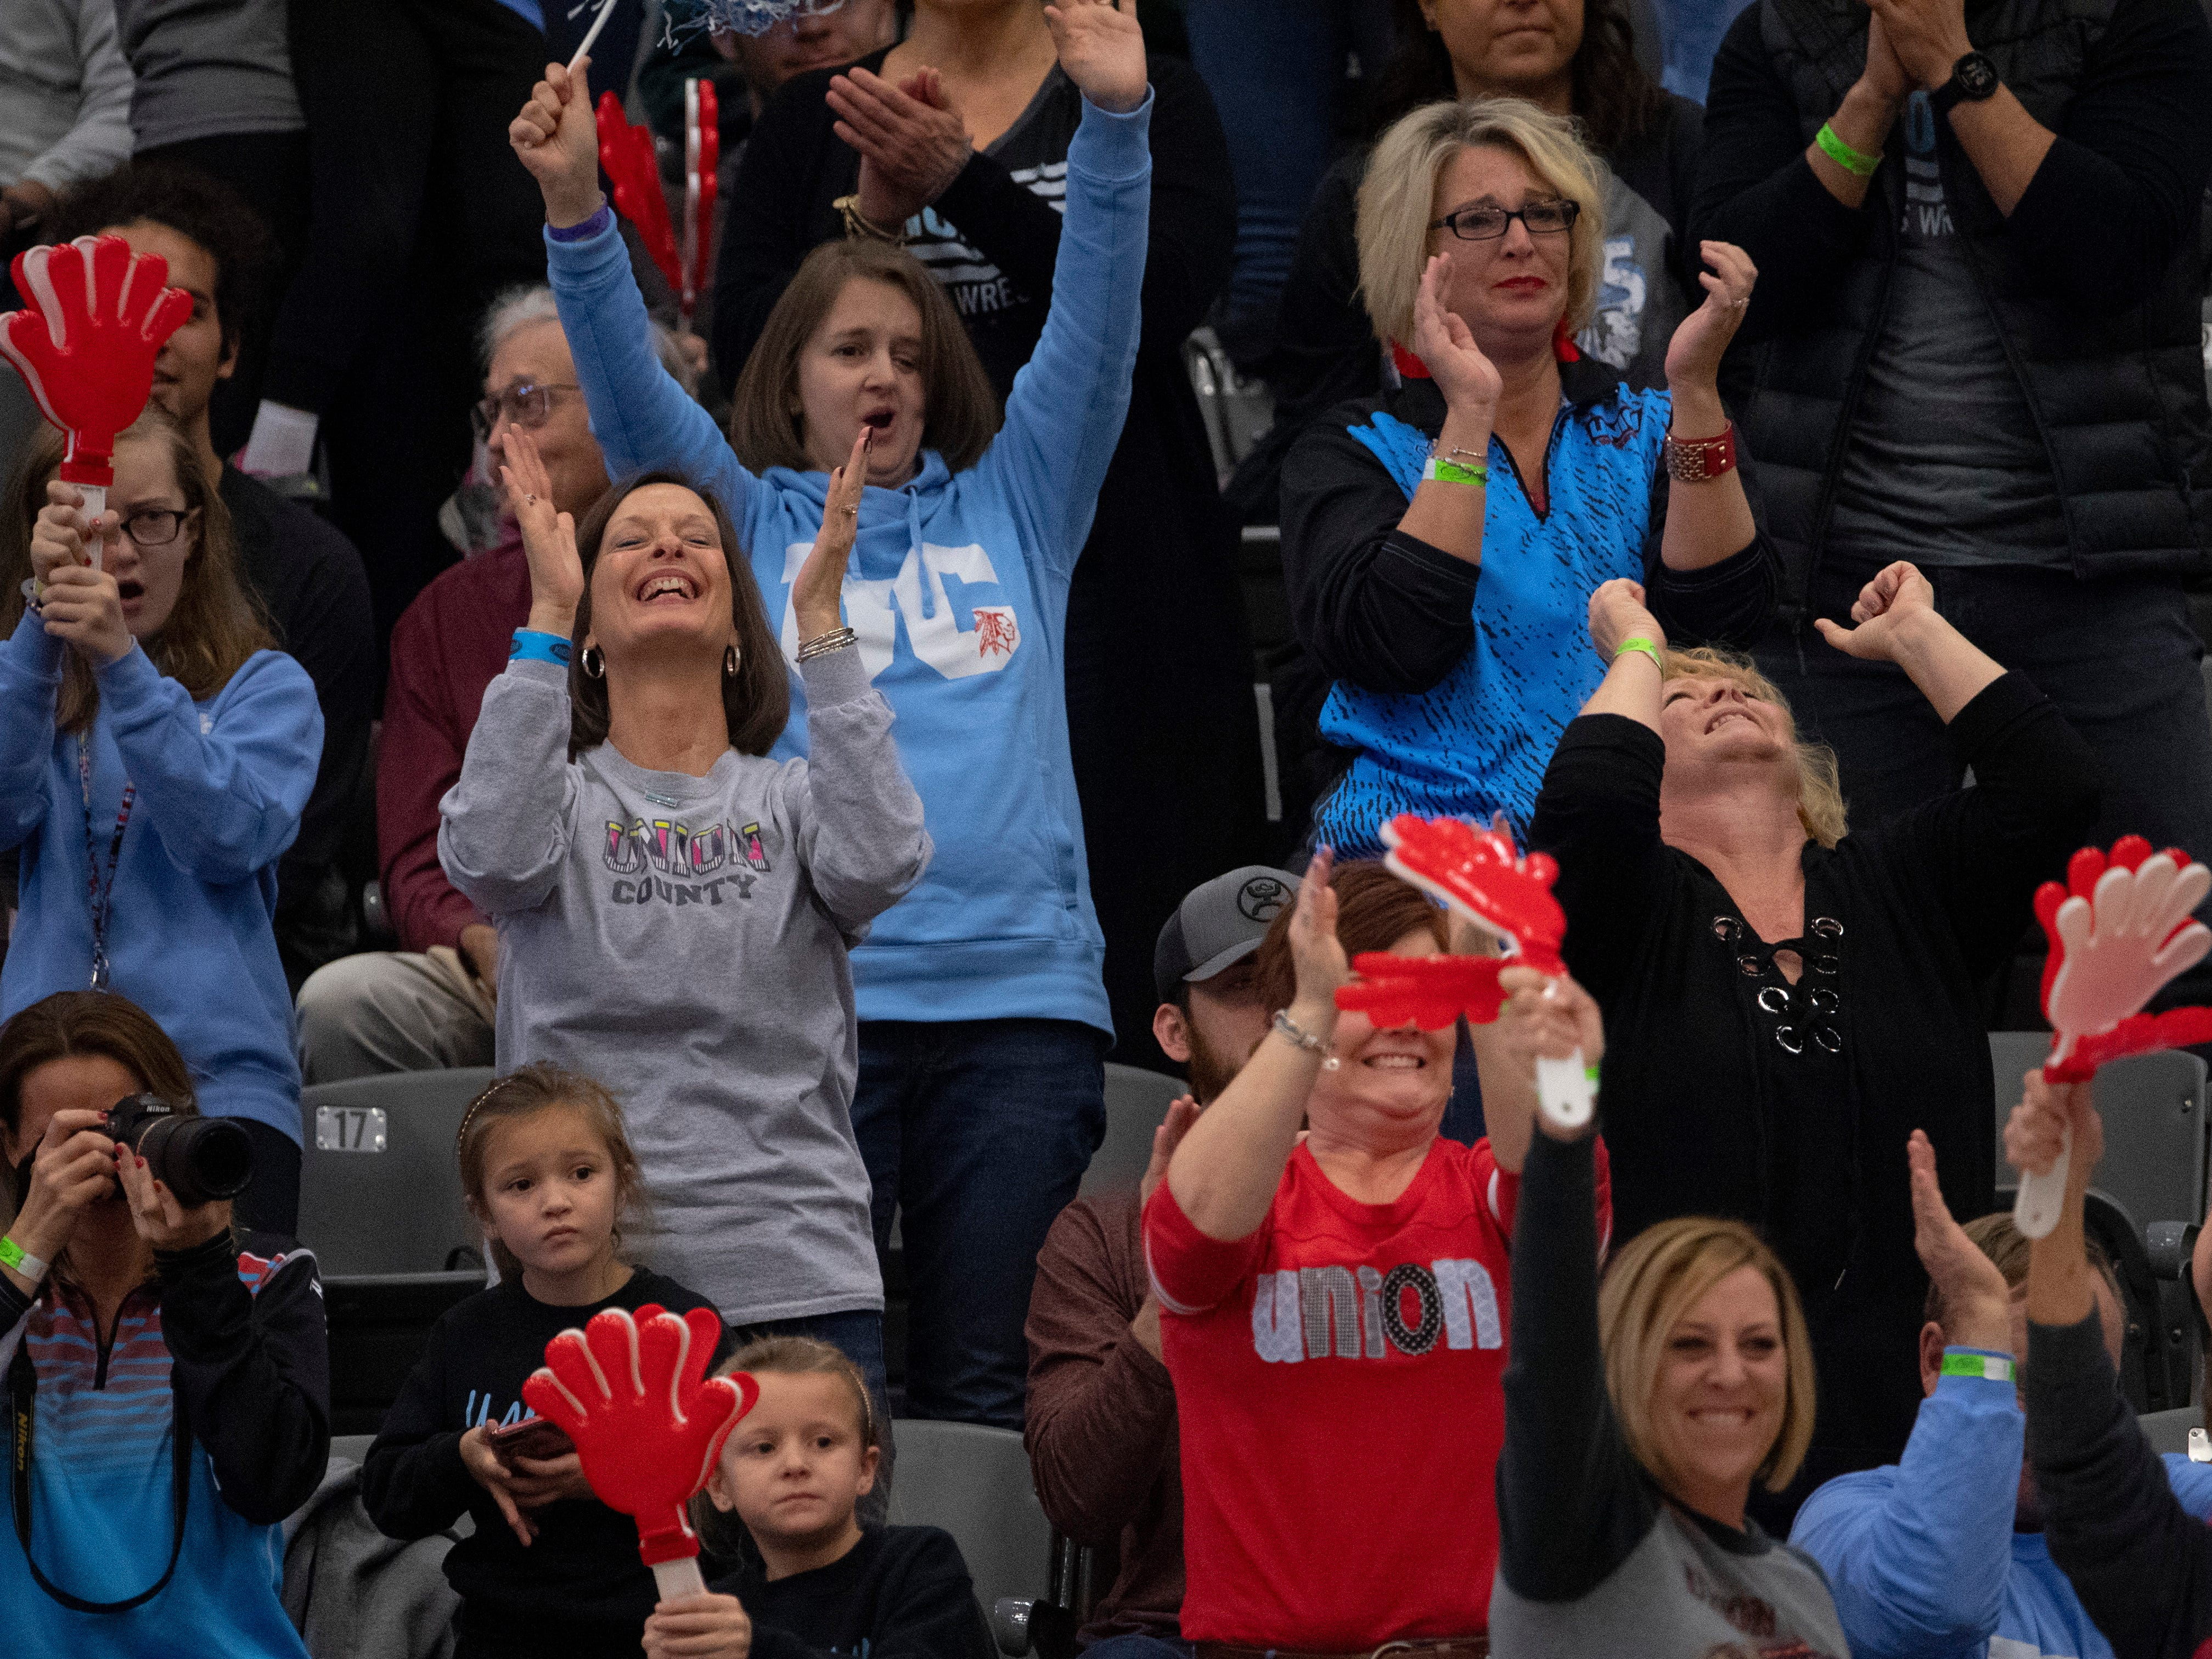 The Union County Braves fan section cheers on Trayce Eckman during his 106-pound match in his first consolation bracket match at the KHSAA State Wrestling Championships at the Alltech Arena in Lexington, Ky., Saturday afternoon. Eckman took home the third place medal for his efforts.